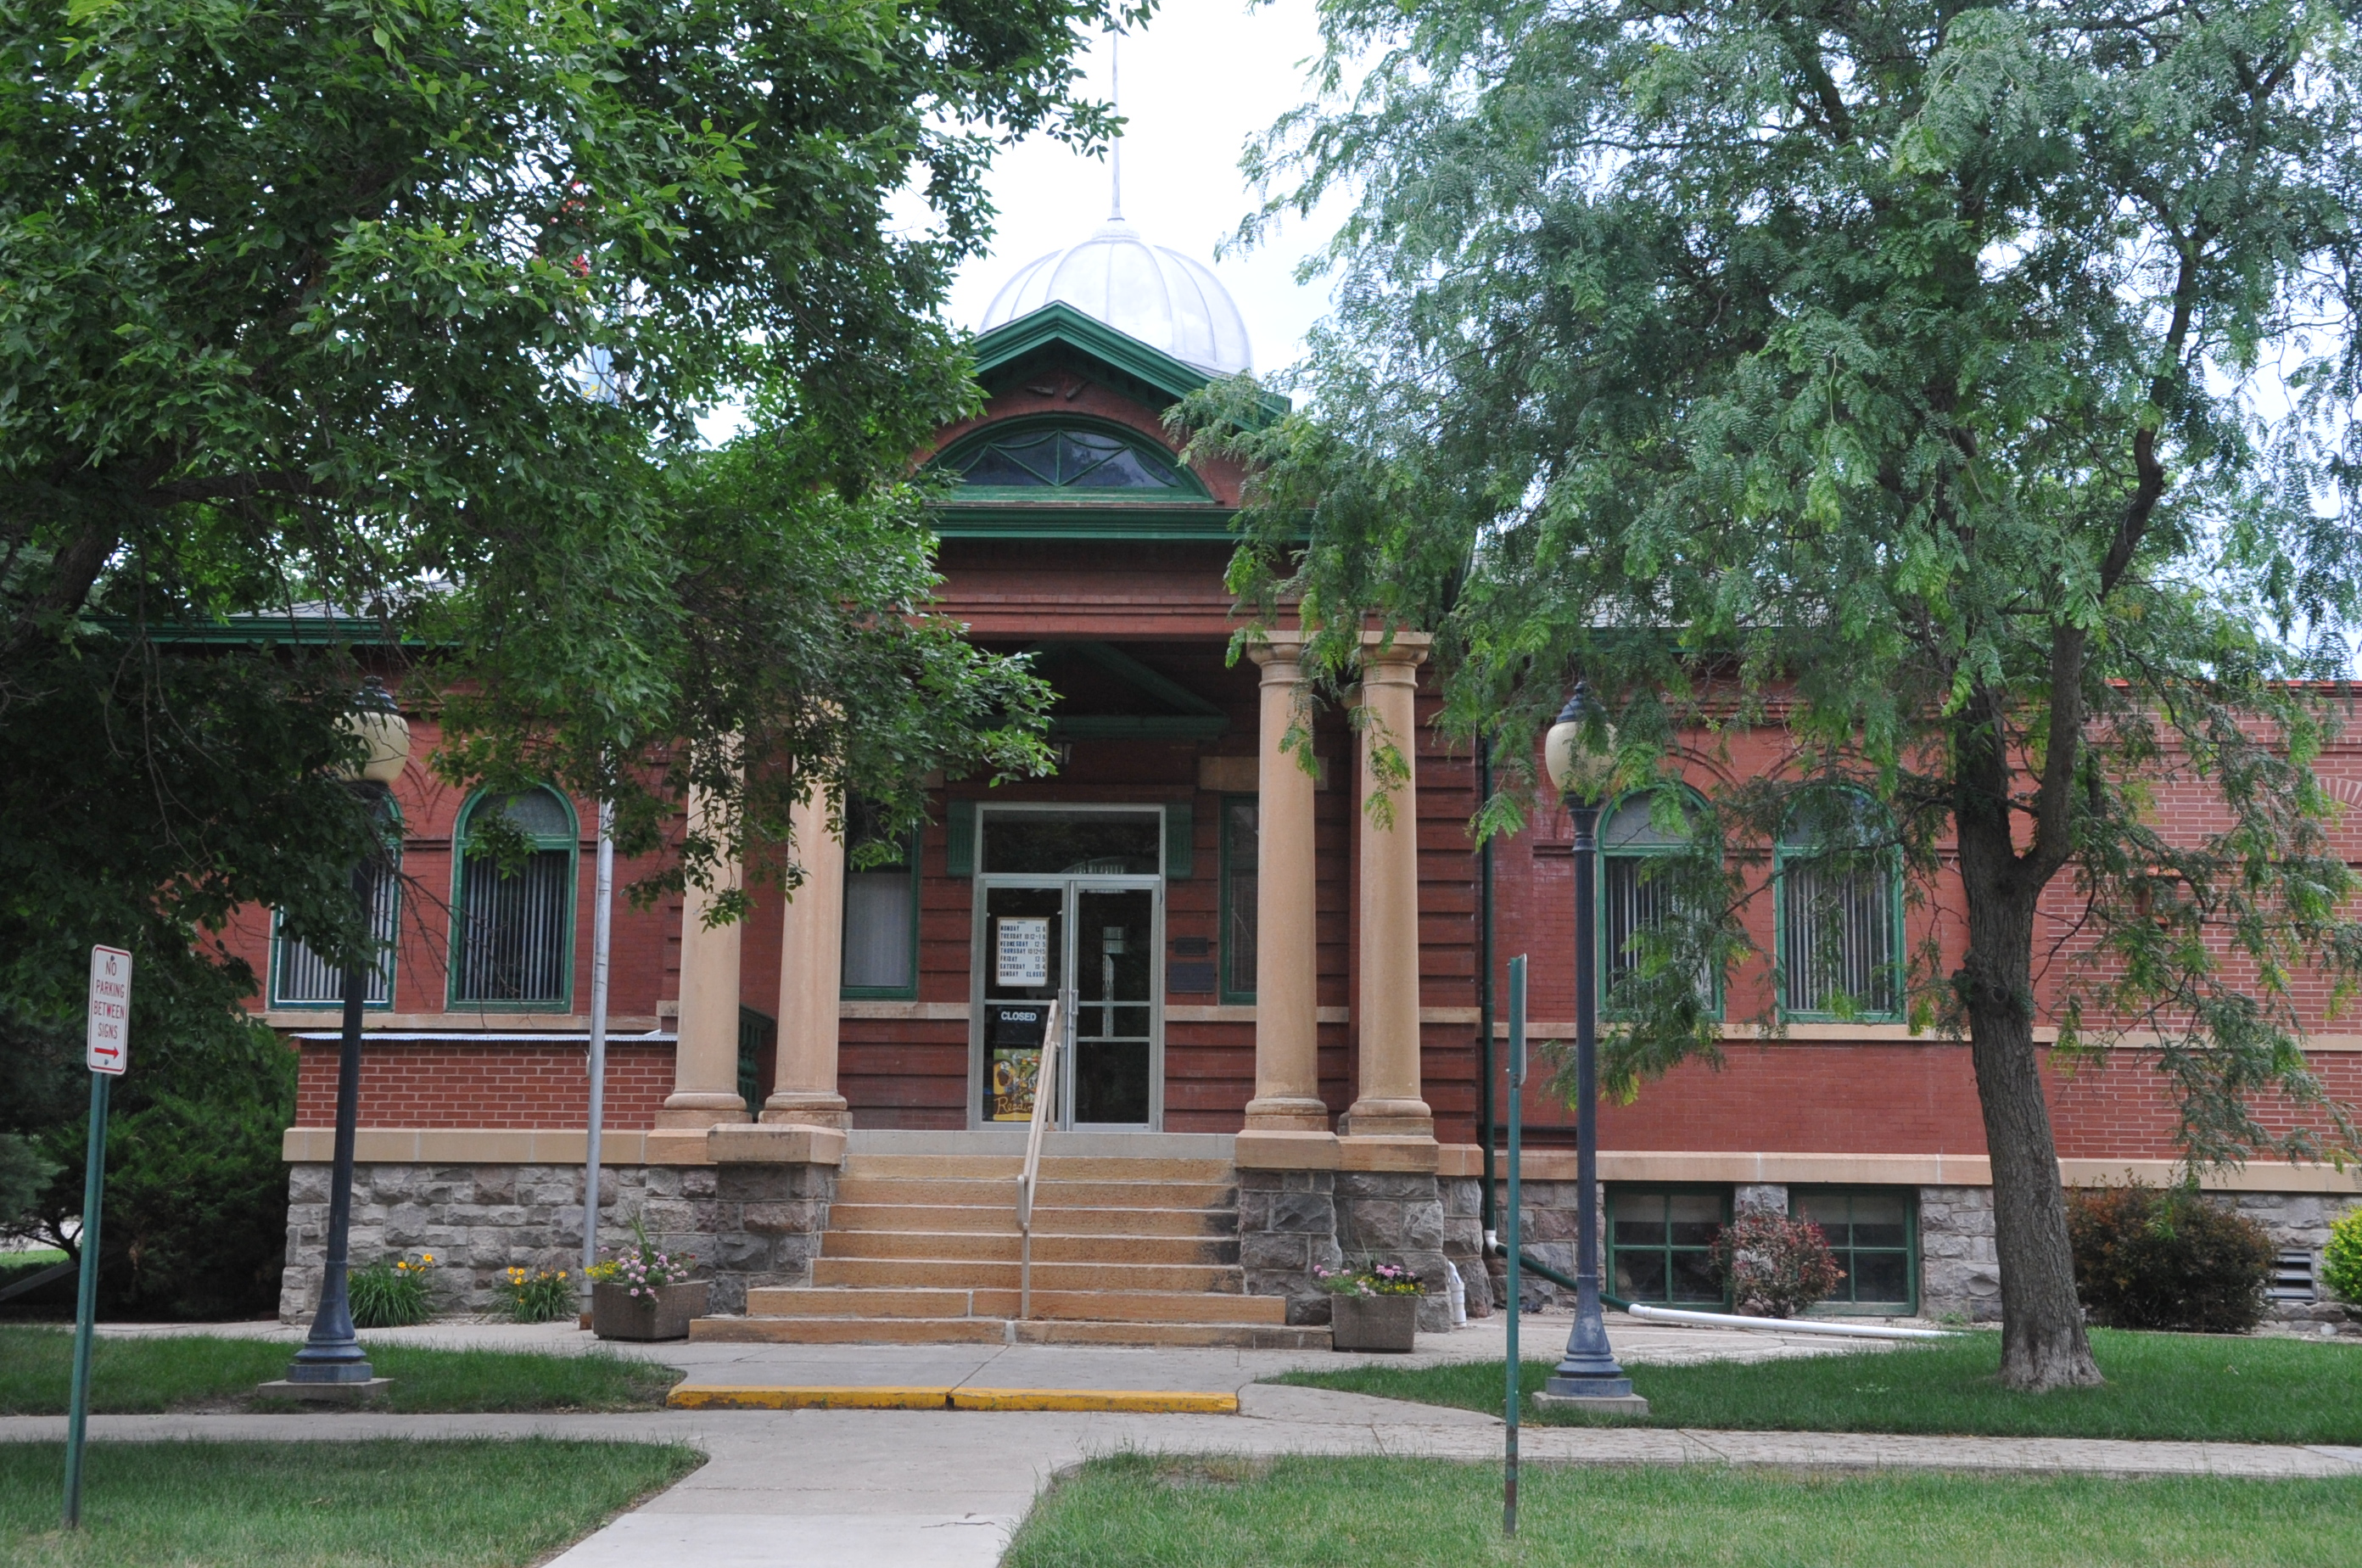 spink county dating Perform a free spink county sd public vital records search, including vital statistics nara does maintain census records dating back to 1790.